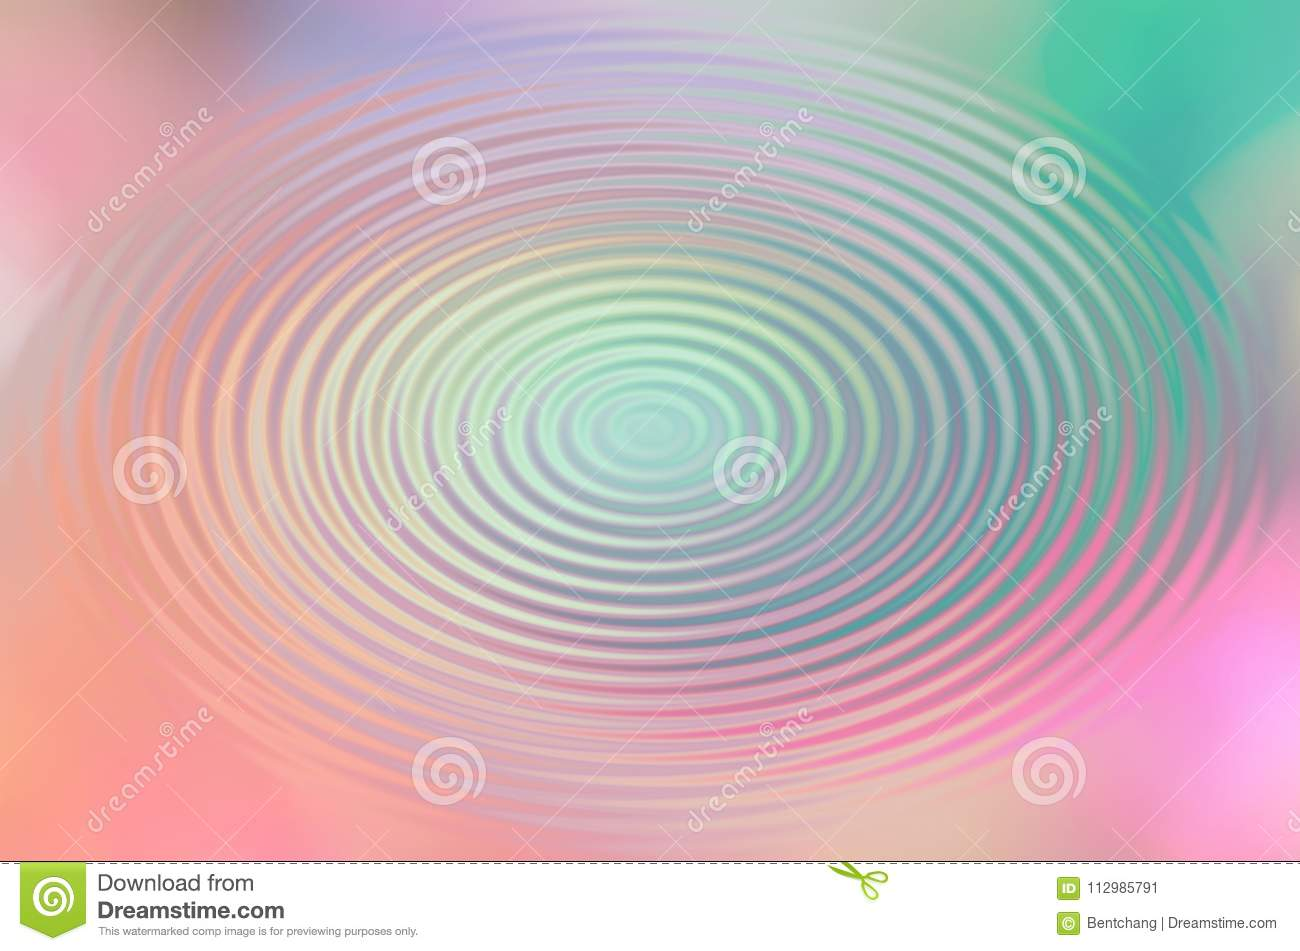 Blur motion, background or texture for design. Painting, bubble, pattern & smooth.